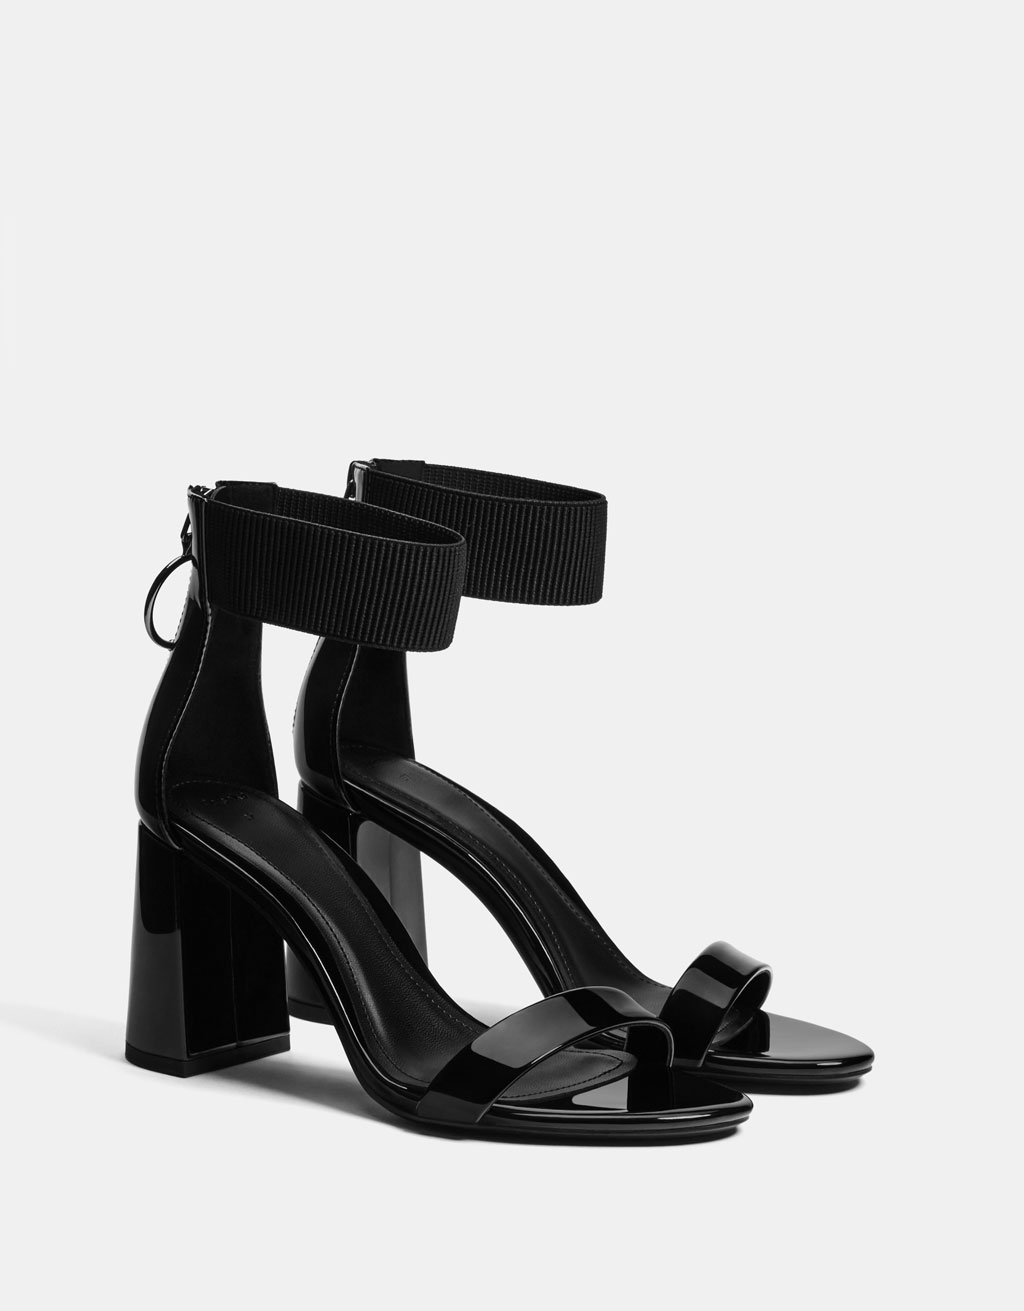 Faux patent leather high-heel sandals with elastic ankle straps